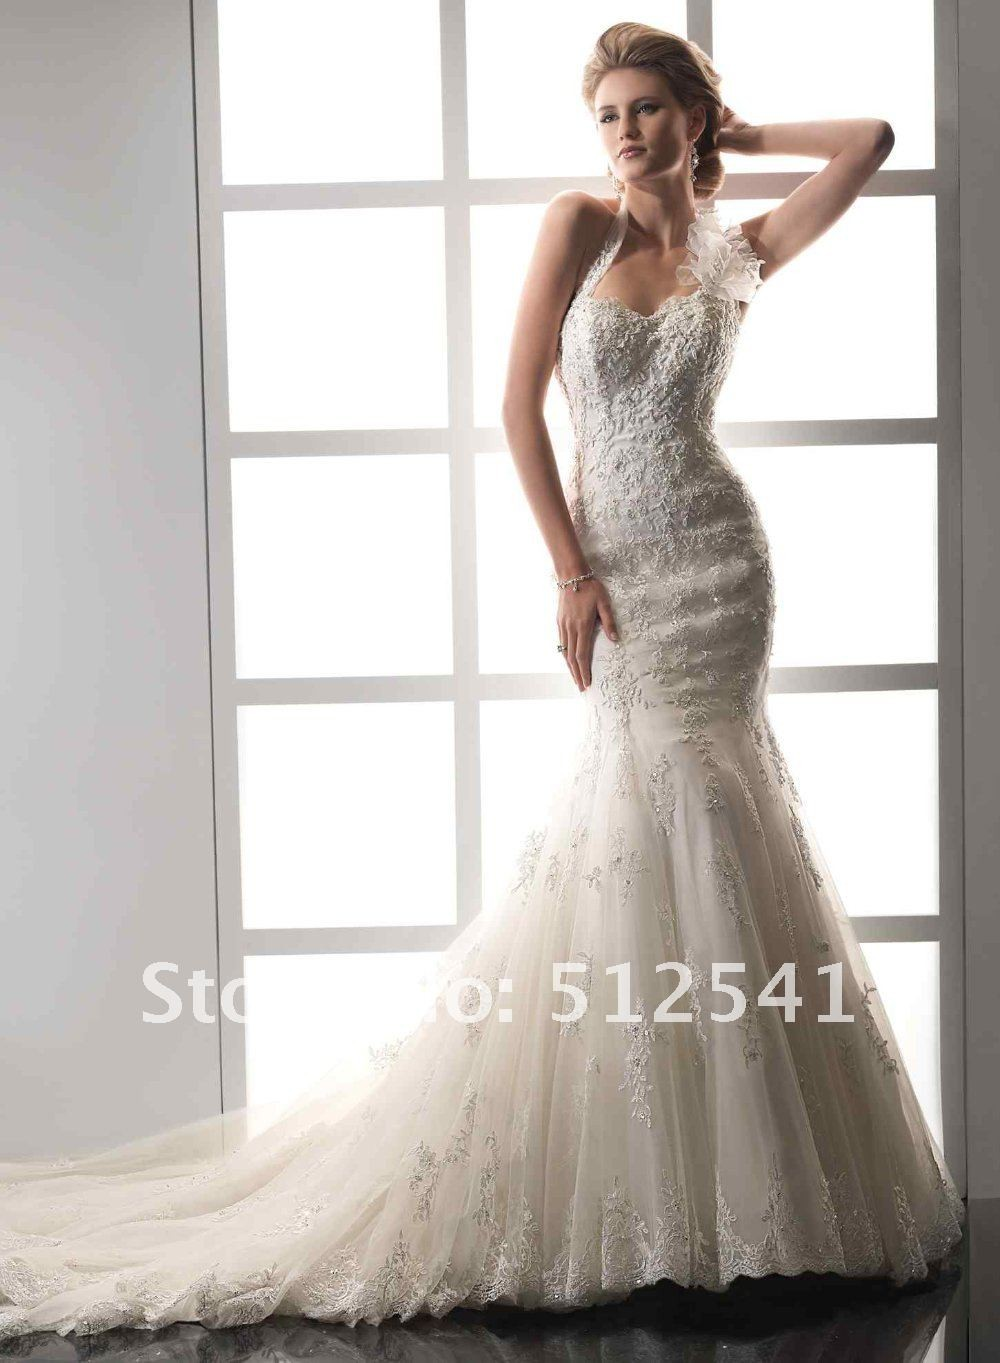 sexy mermaid wedding dresses from sexy mermaid wedding dresses Sexy Mermaid Wedding Dresses at DressV